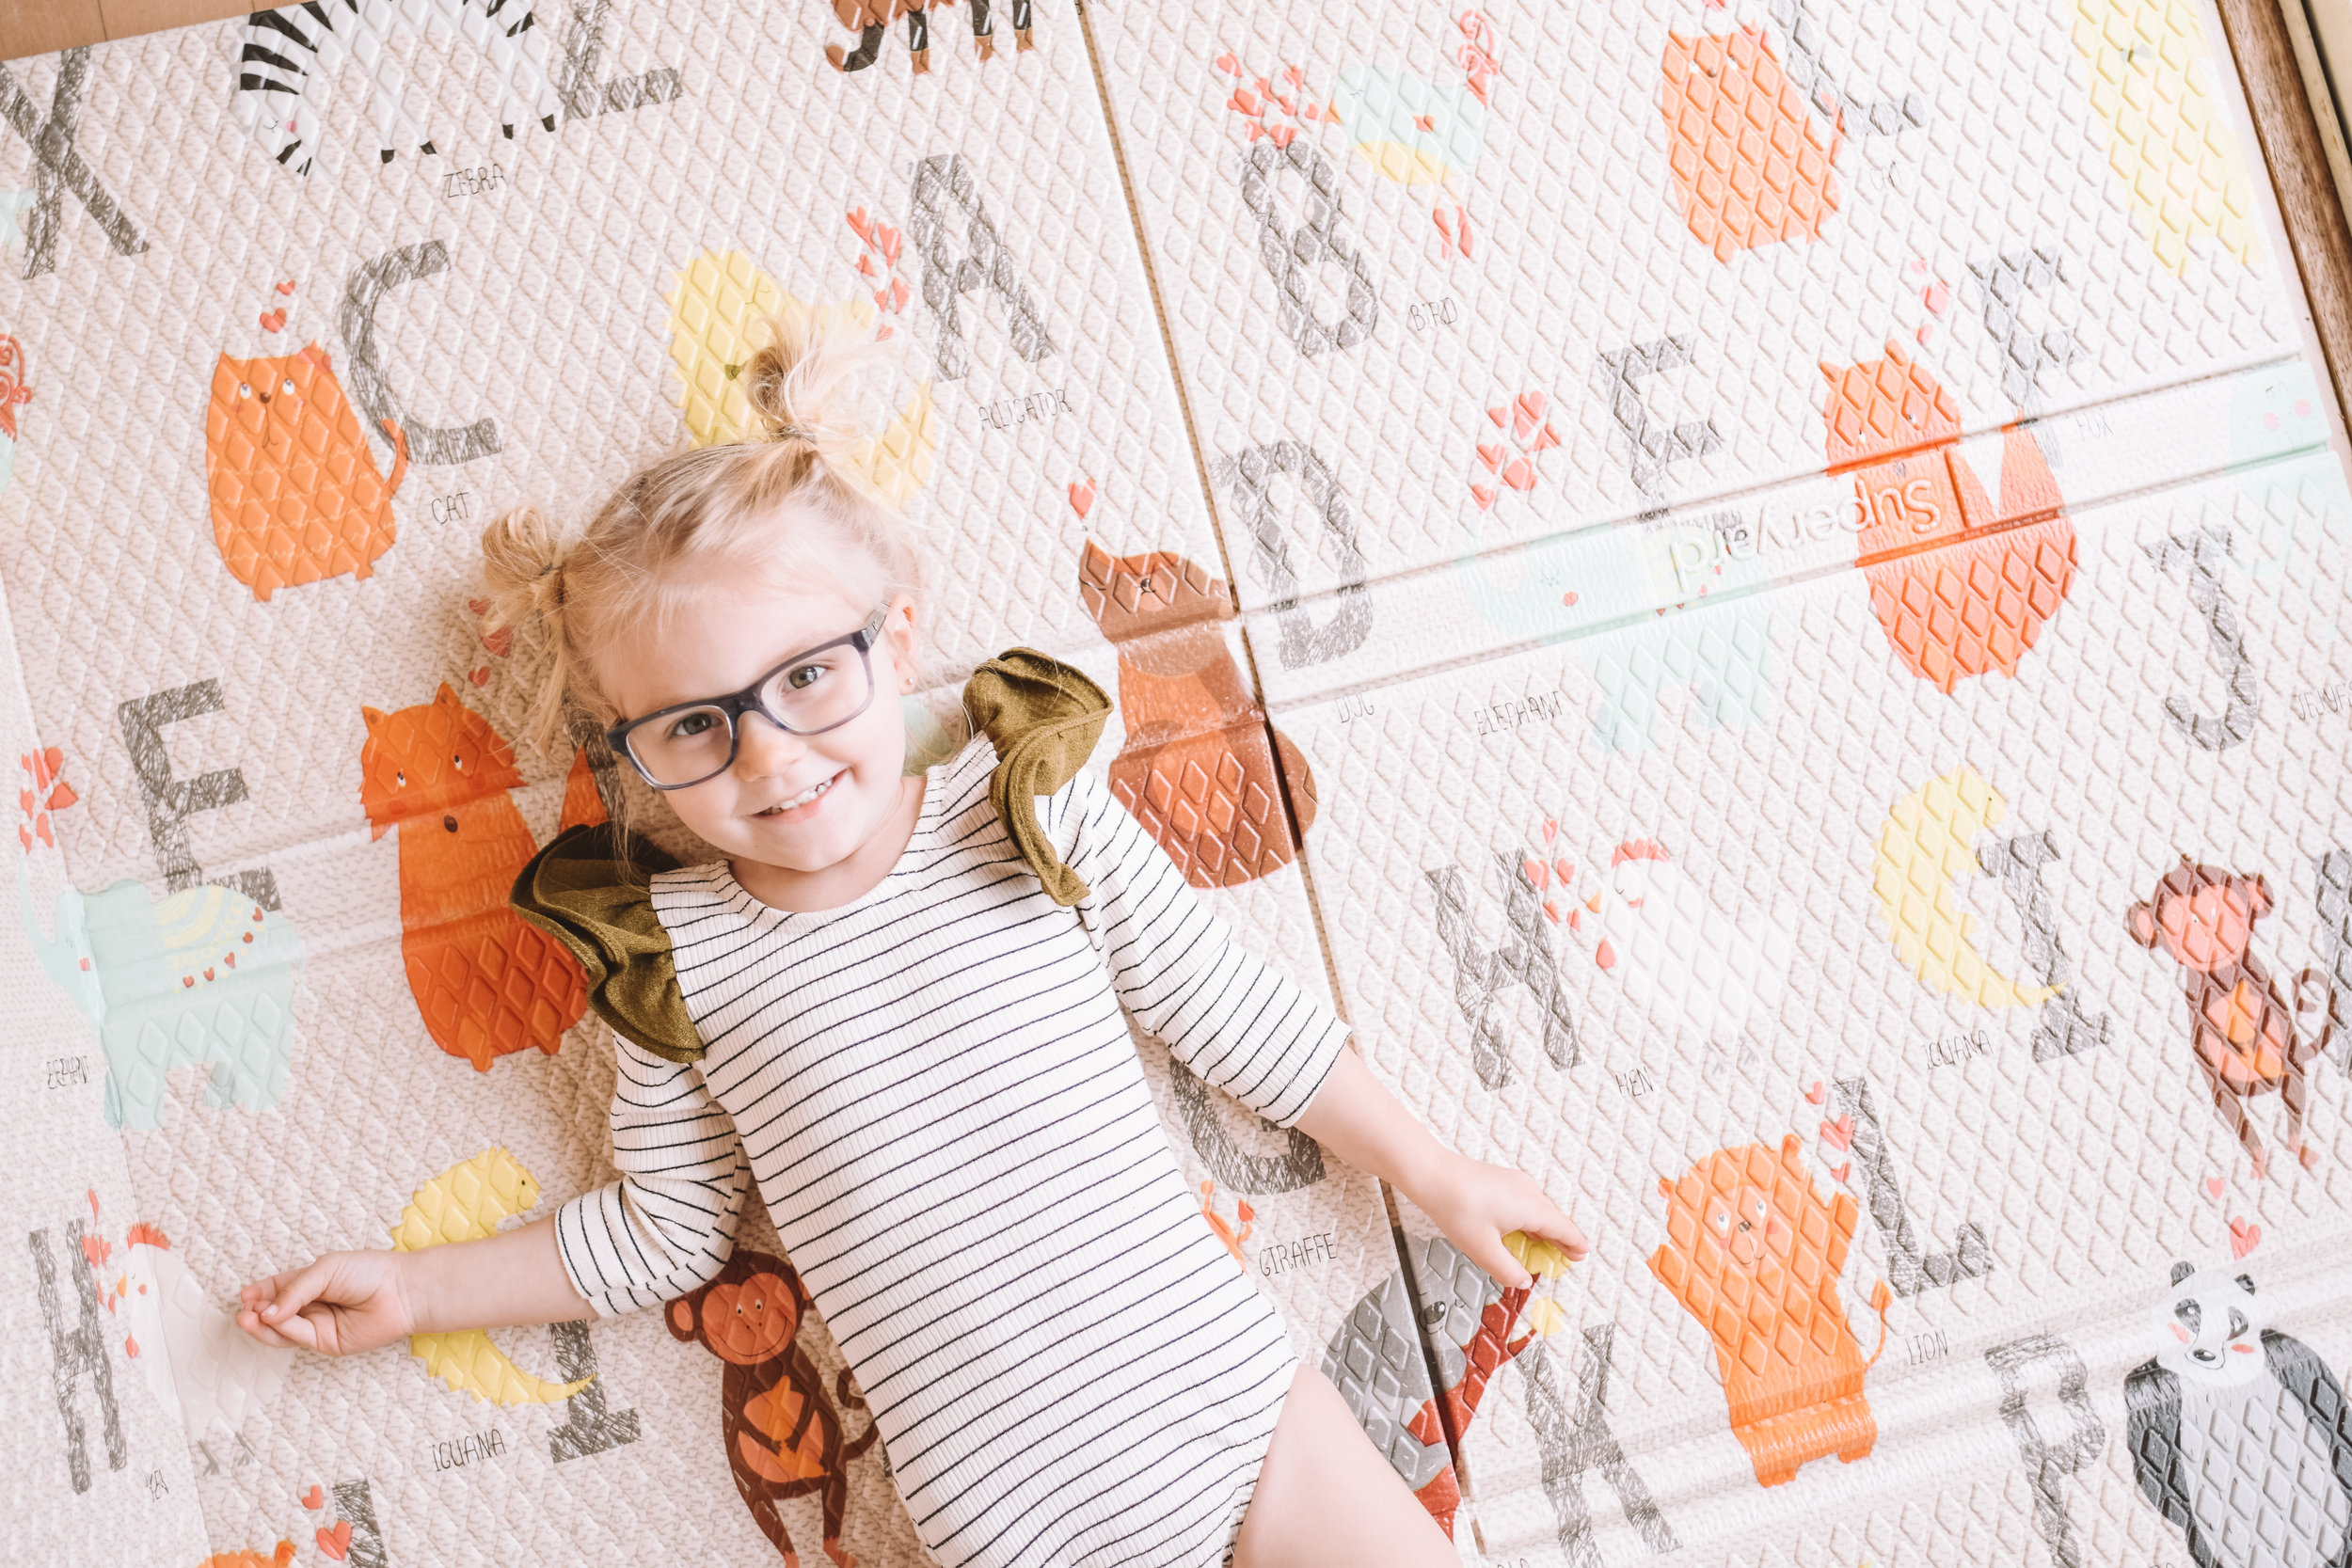 Best Baby Play Yard Play Mat - North States - The Overwhelmed Mommy Blogger